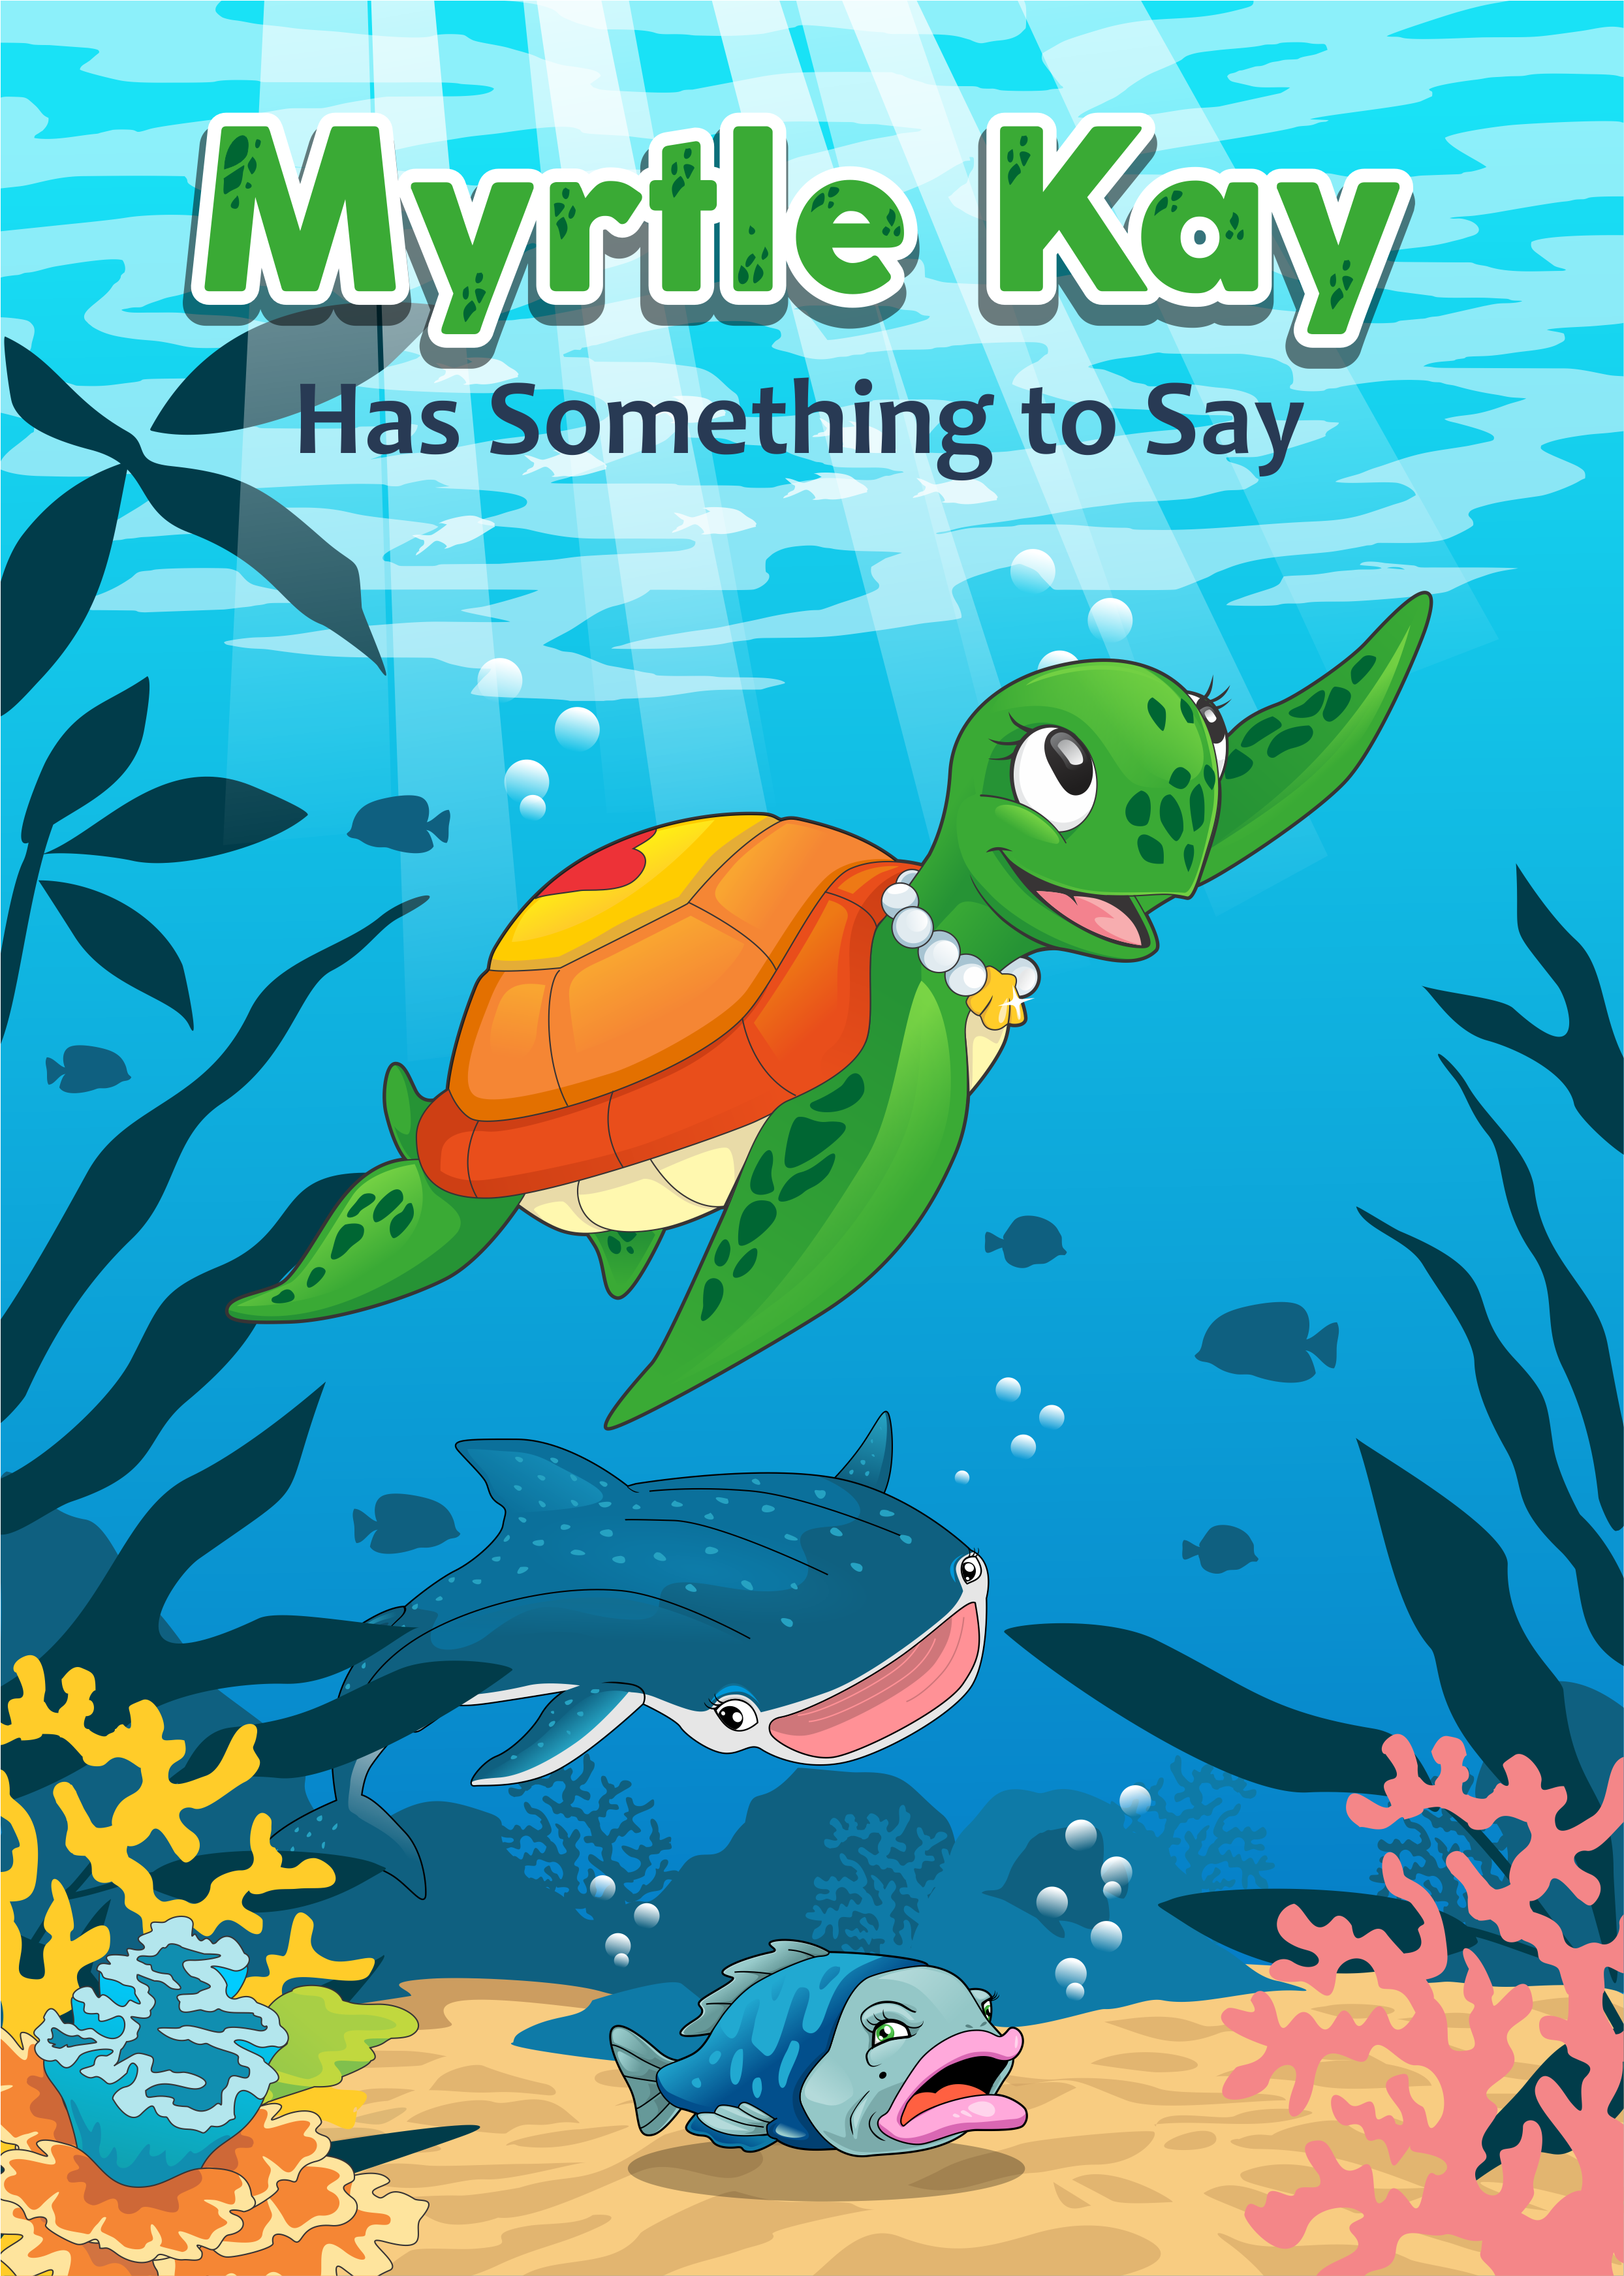 Children's book about diversity, using sea animals as characters